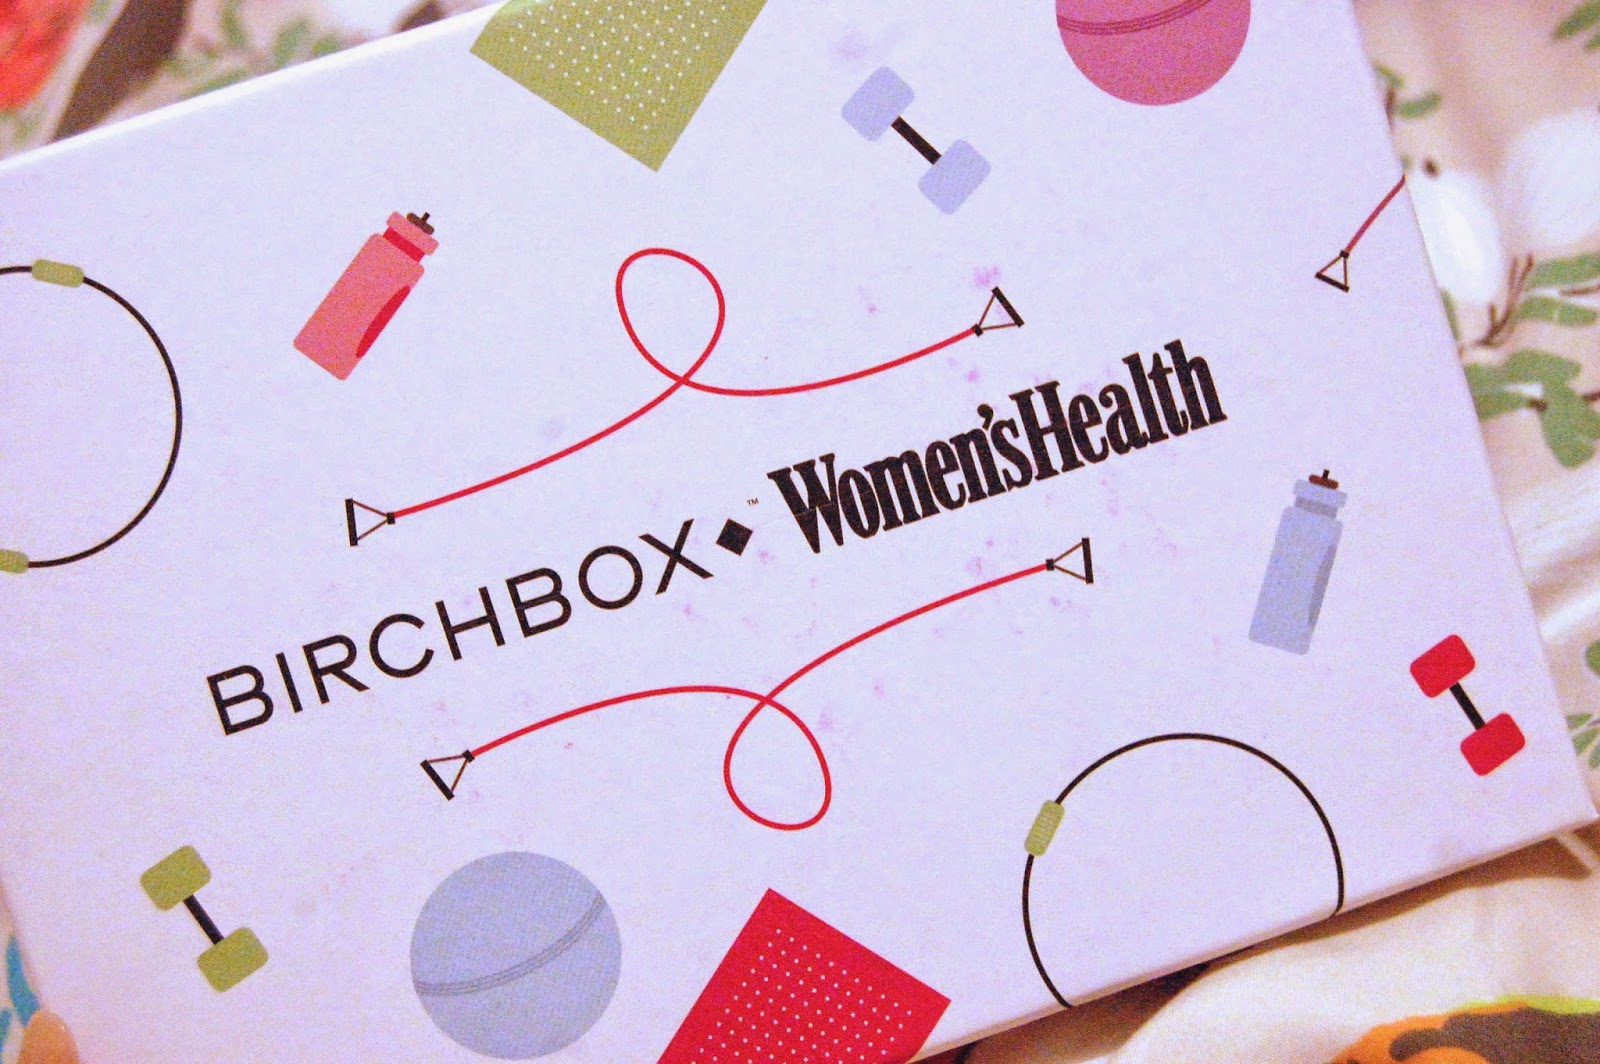 birchbox, skincare, beauty box, health